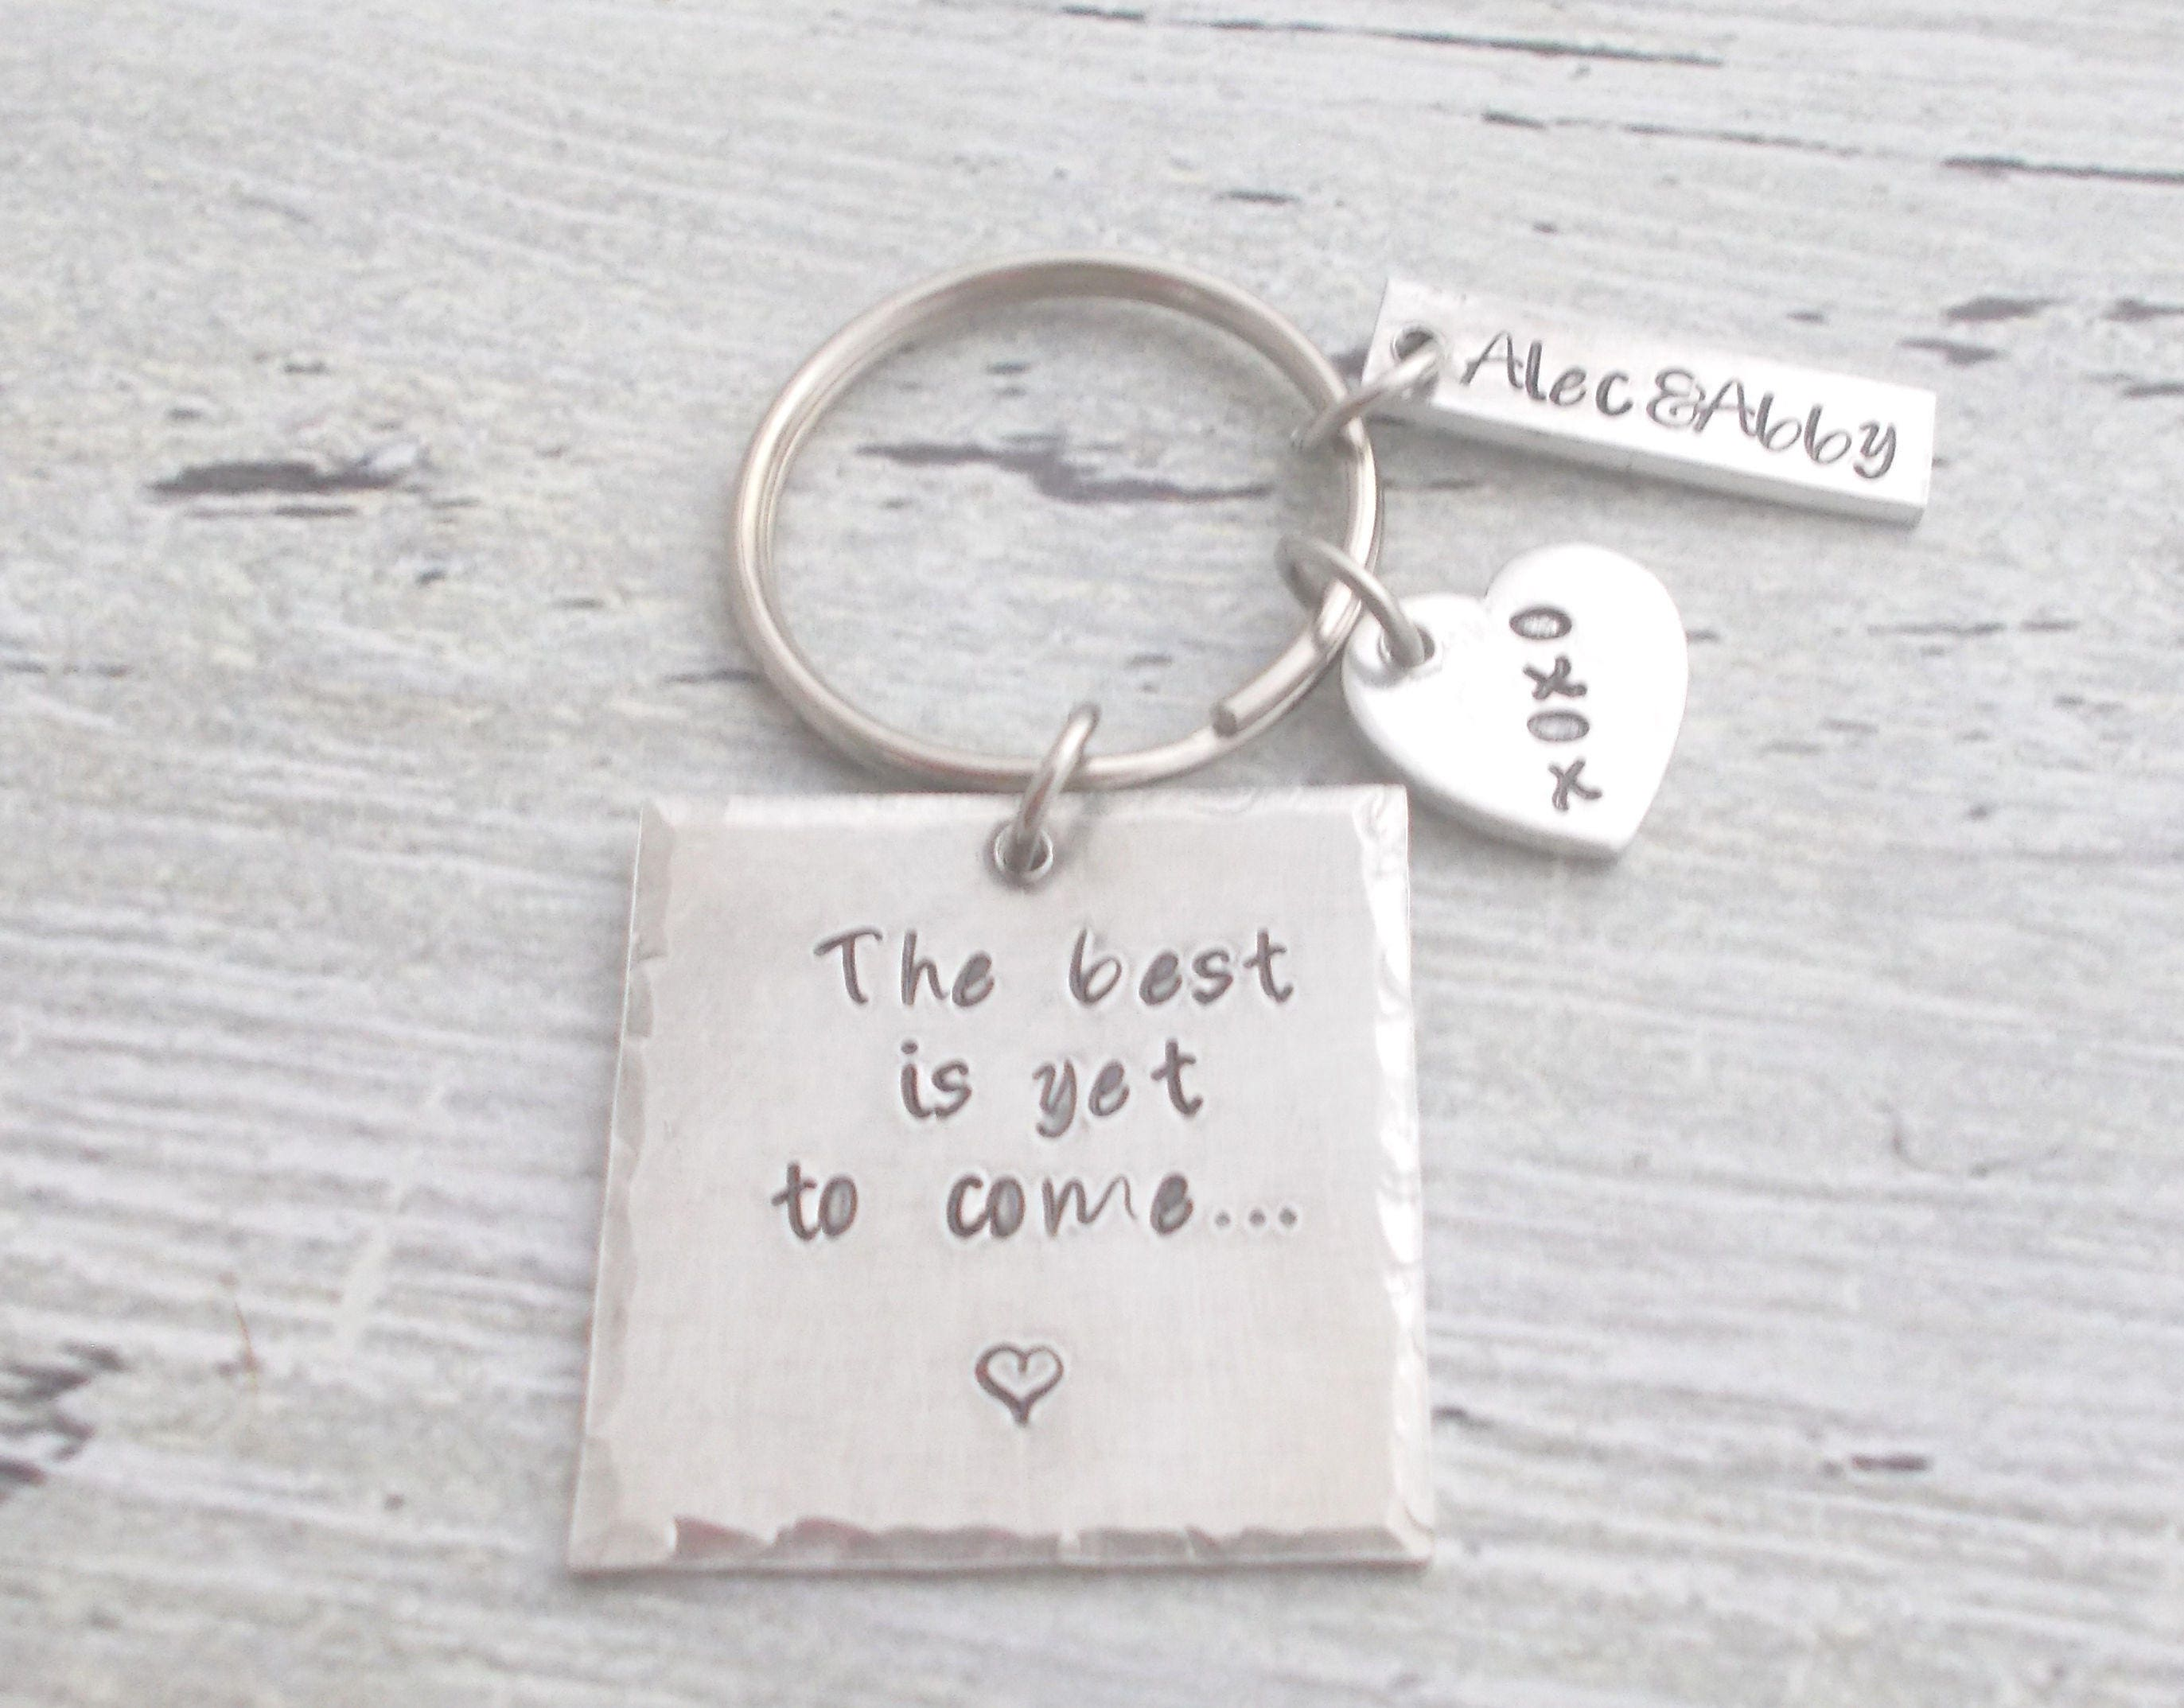 the best is yet to come couples keychain couples gift anniversary